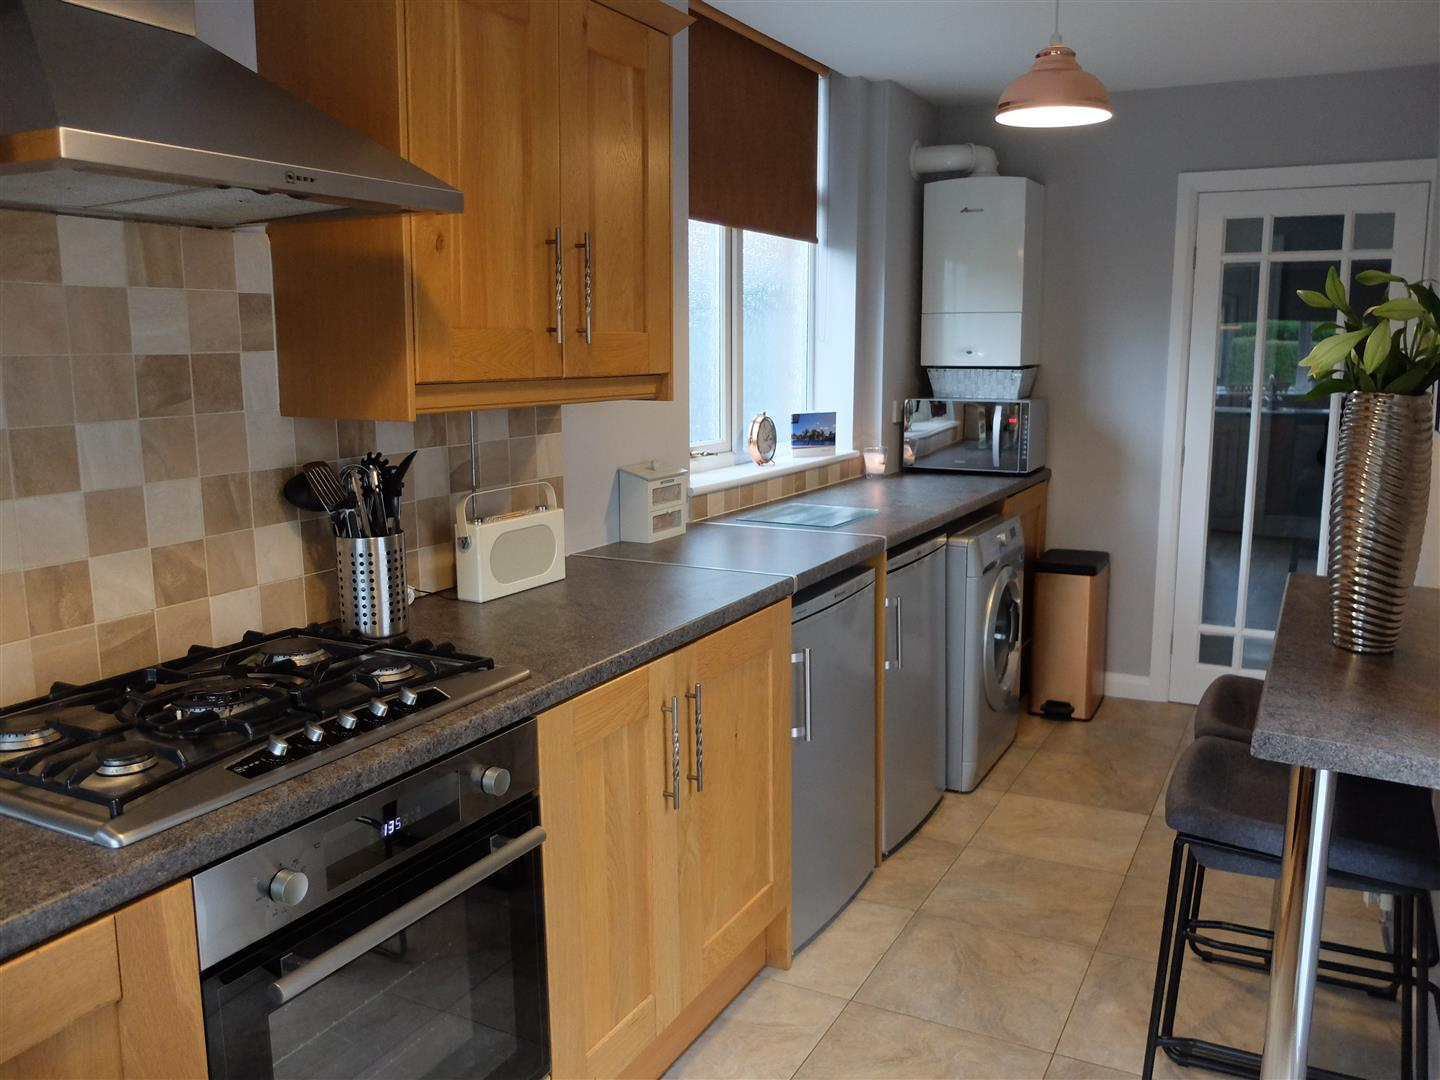 3 Bedrooms House - Semi-Detached For Sale 148 Blackwell Road Carlisle 160,000